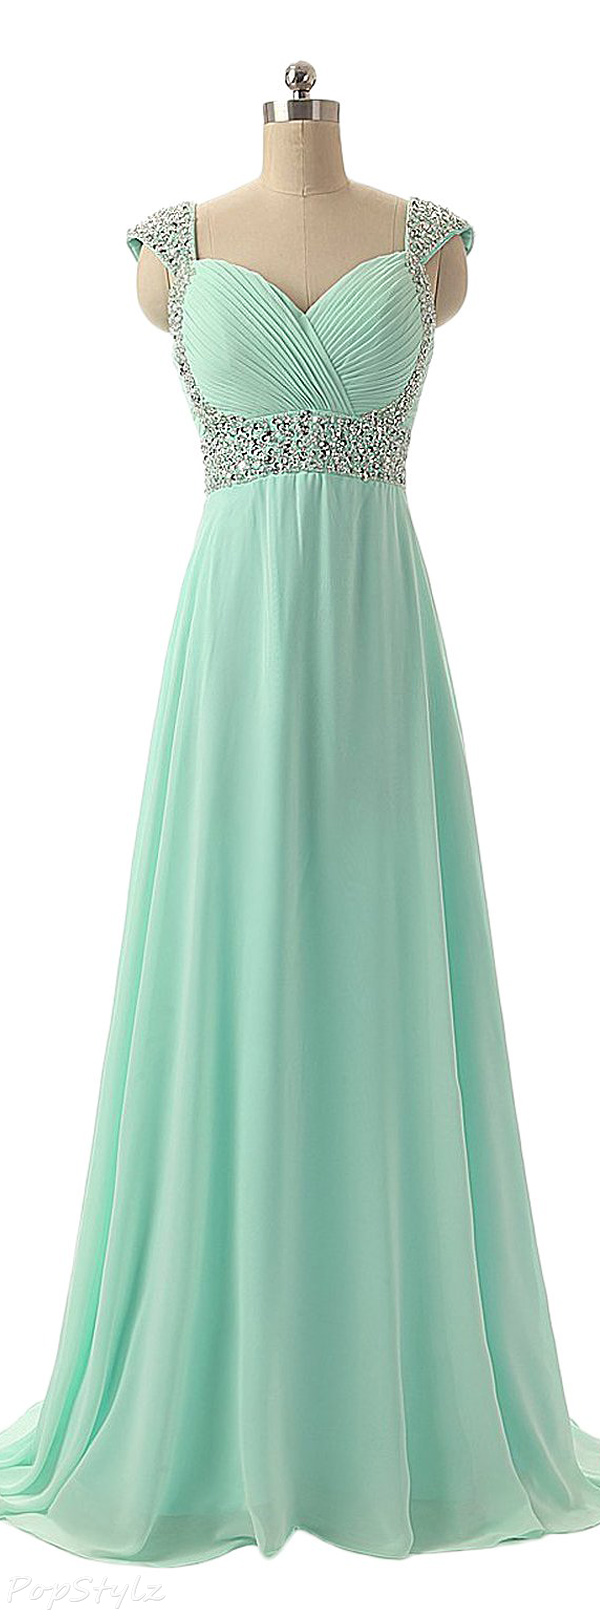 Sunvary Cap Sleeves Long Chiffon Formal Gown